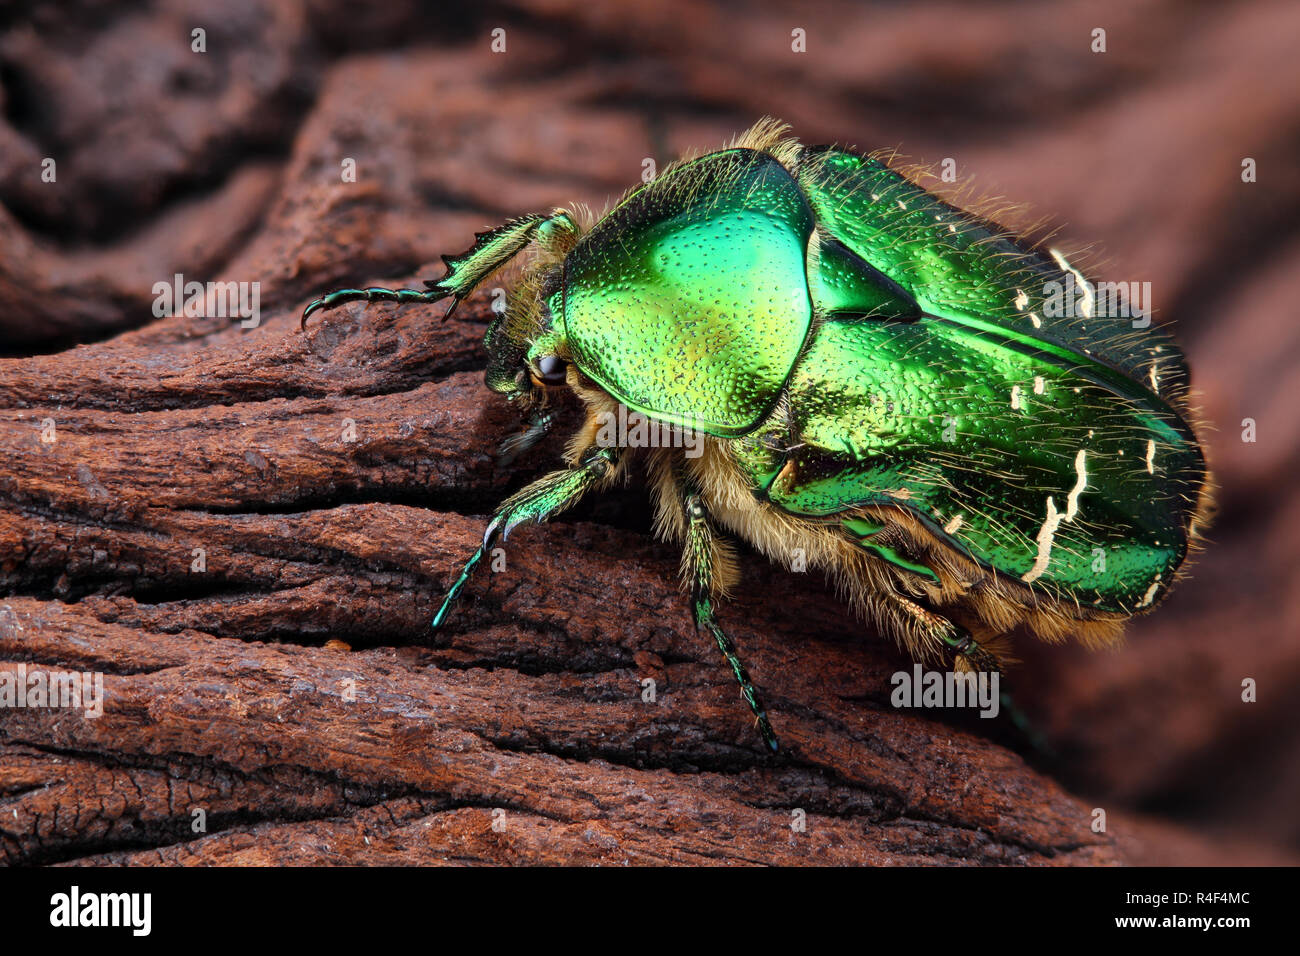 Extremely sharp and detailed photo of Scarabeus (Cetonia aurata) beetle. The image is stacked from many shots into one sharp image. - Stock Image